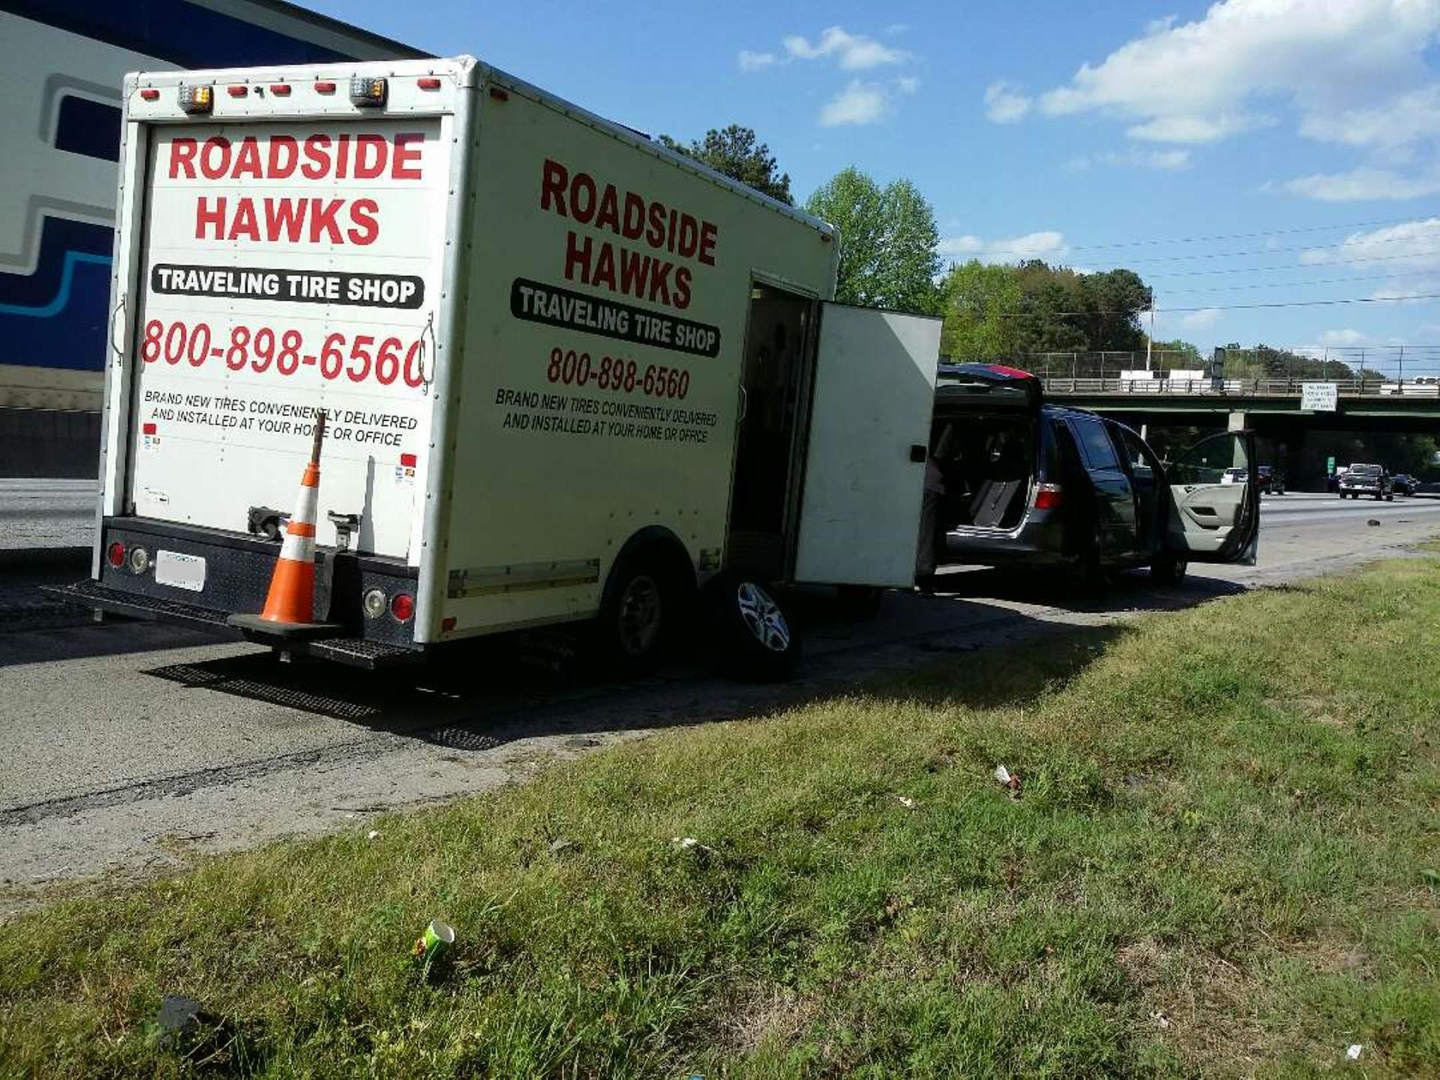 Tire Shops Near Me Open On Sunday >> 24 Hour Roadside Hawks Traveling Tire Shop Atlanta